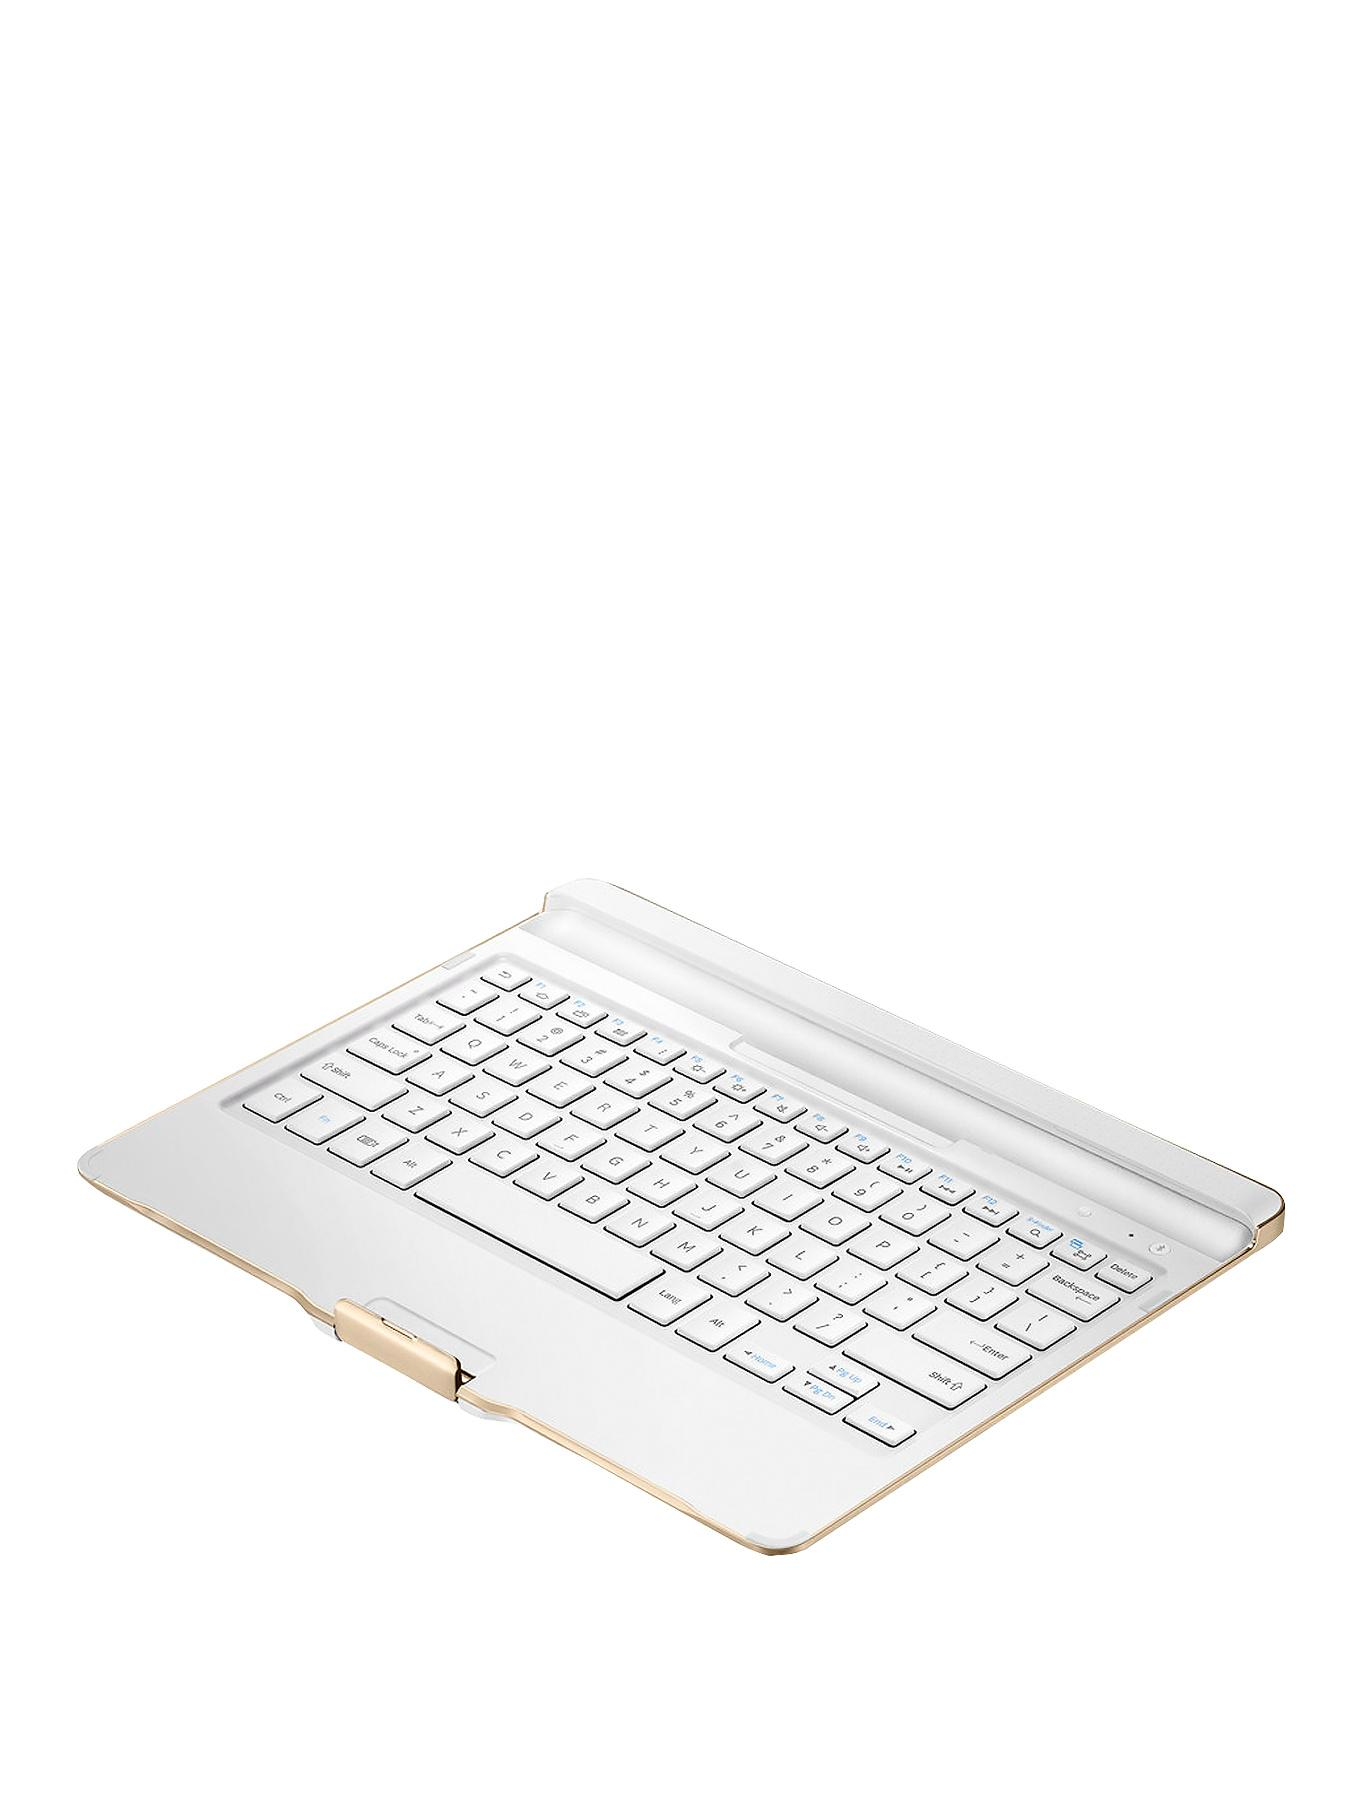 Samsung Galaxy Tab S 8.4 inch Bluetooth Keyboard Cover - White - White, White